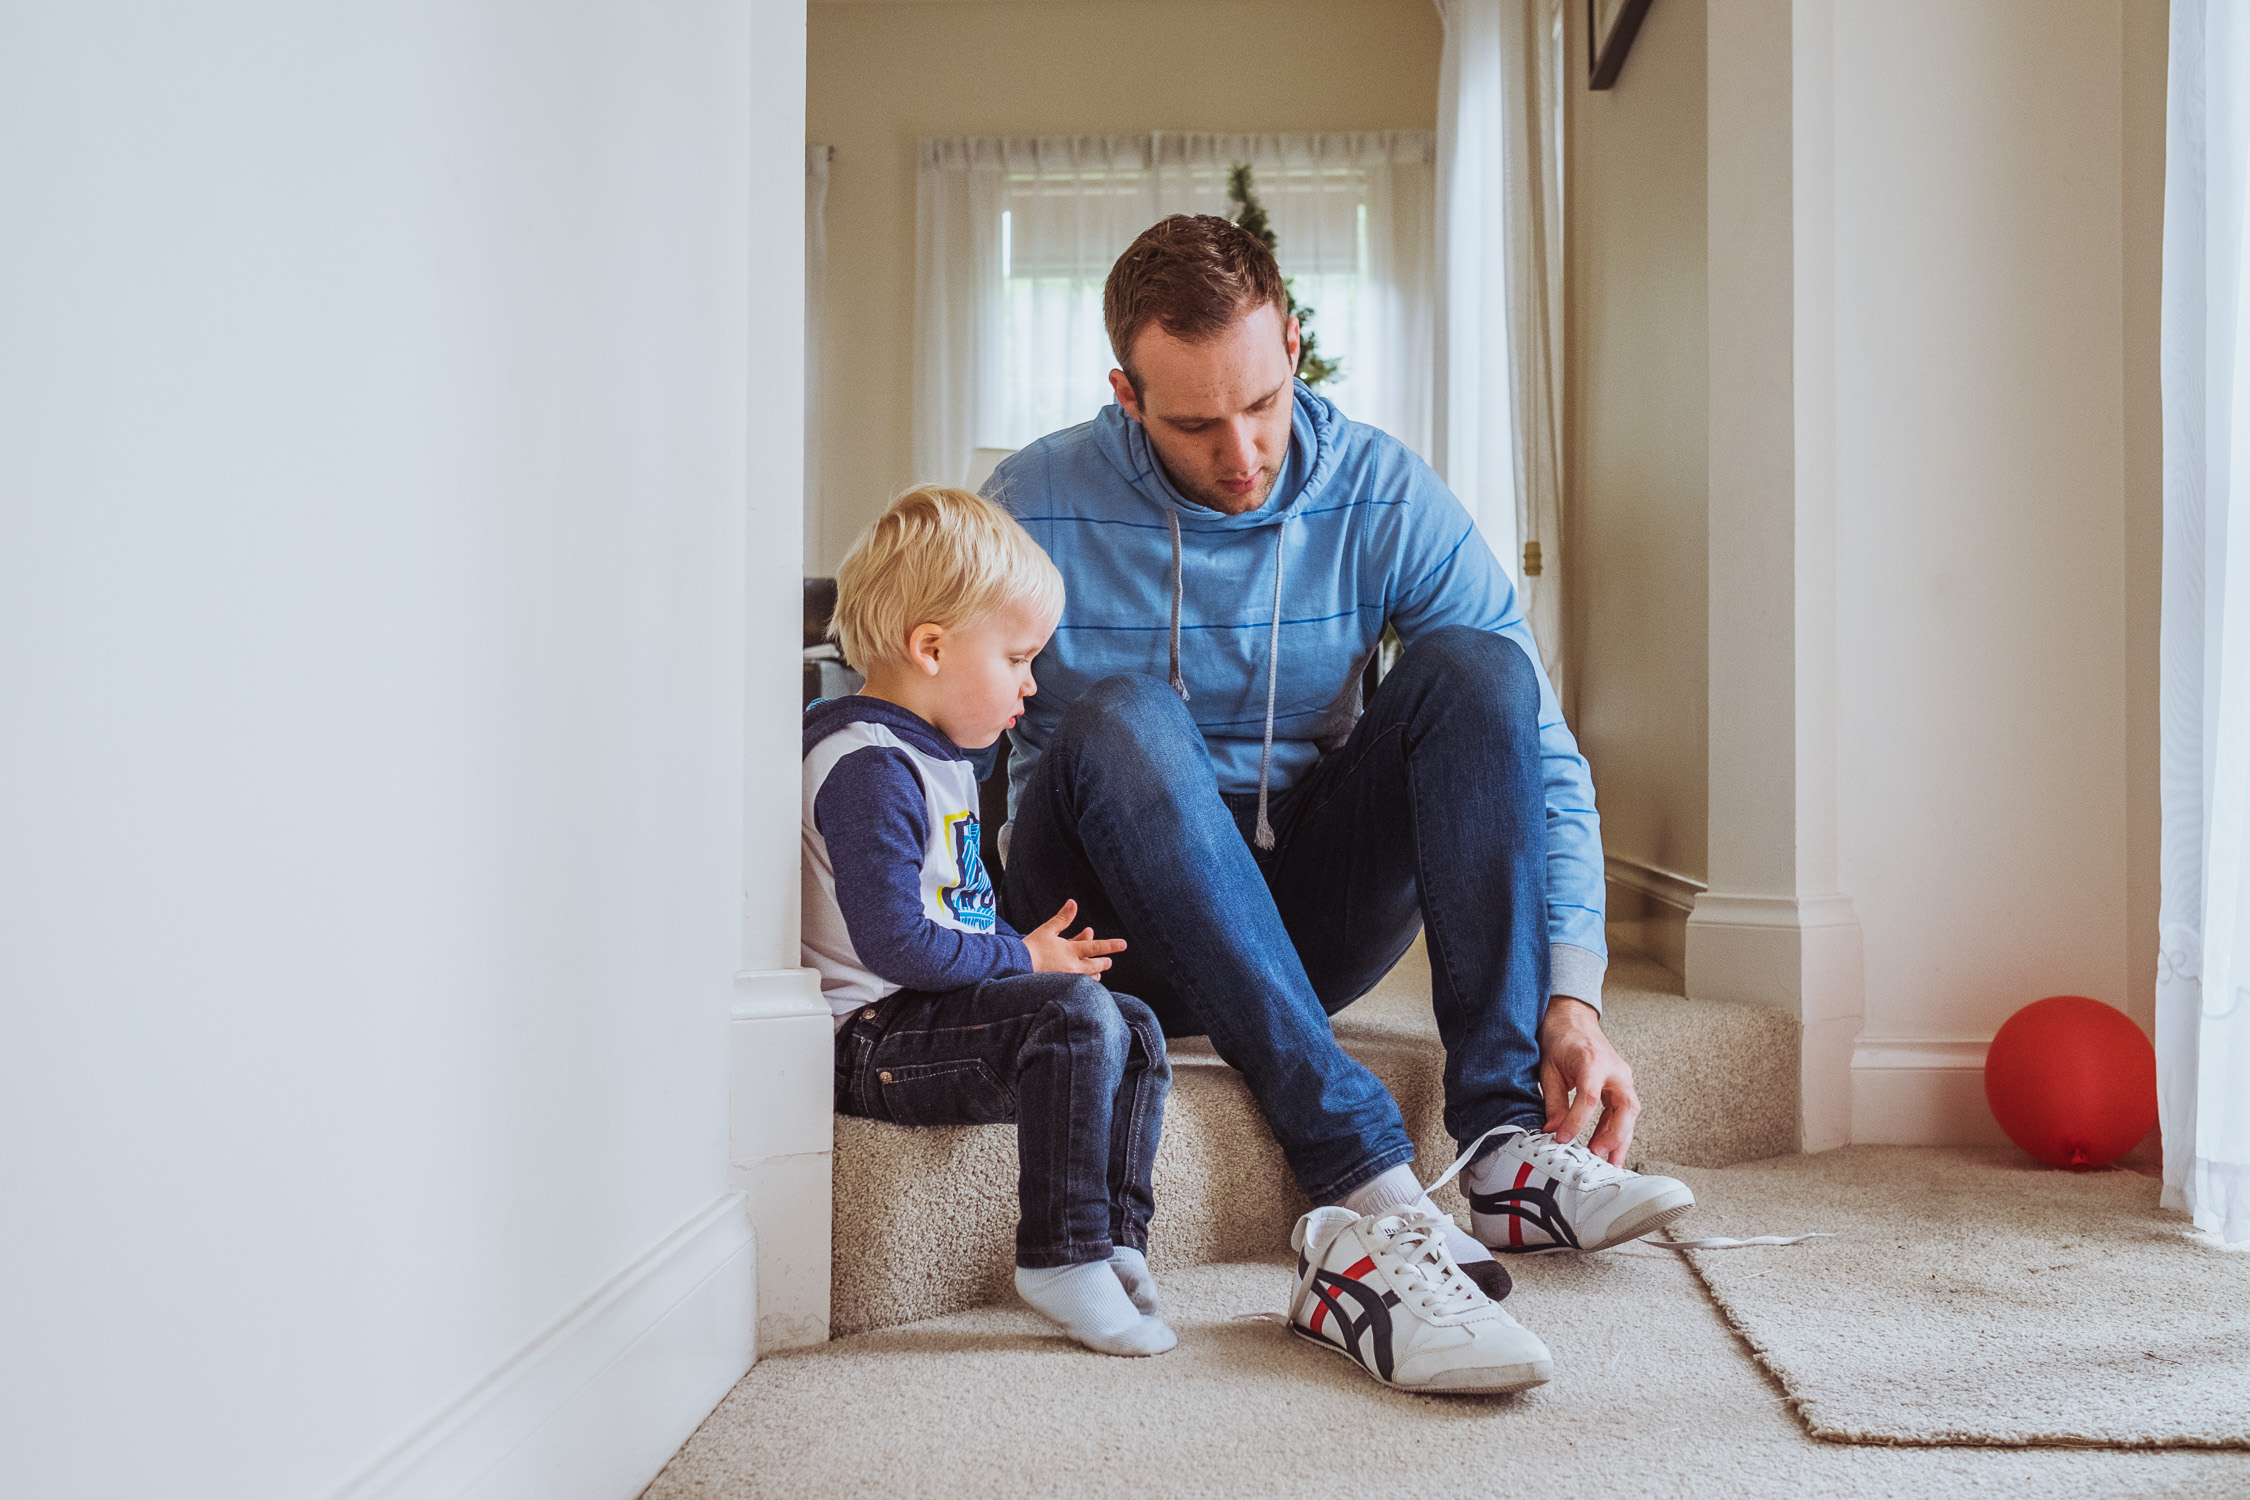 Day In The Life - dad teaching toddler to tie shoes